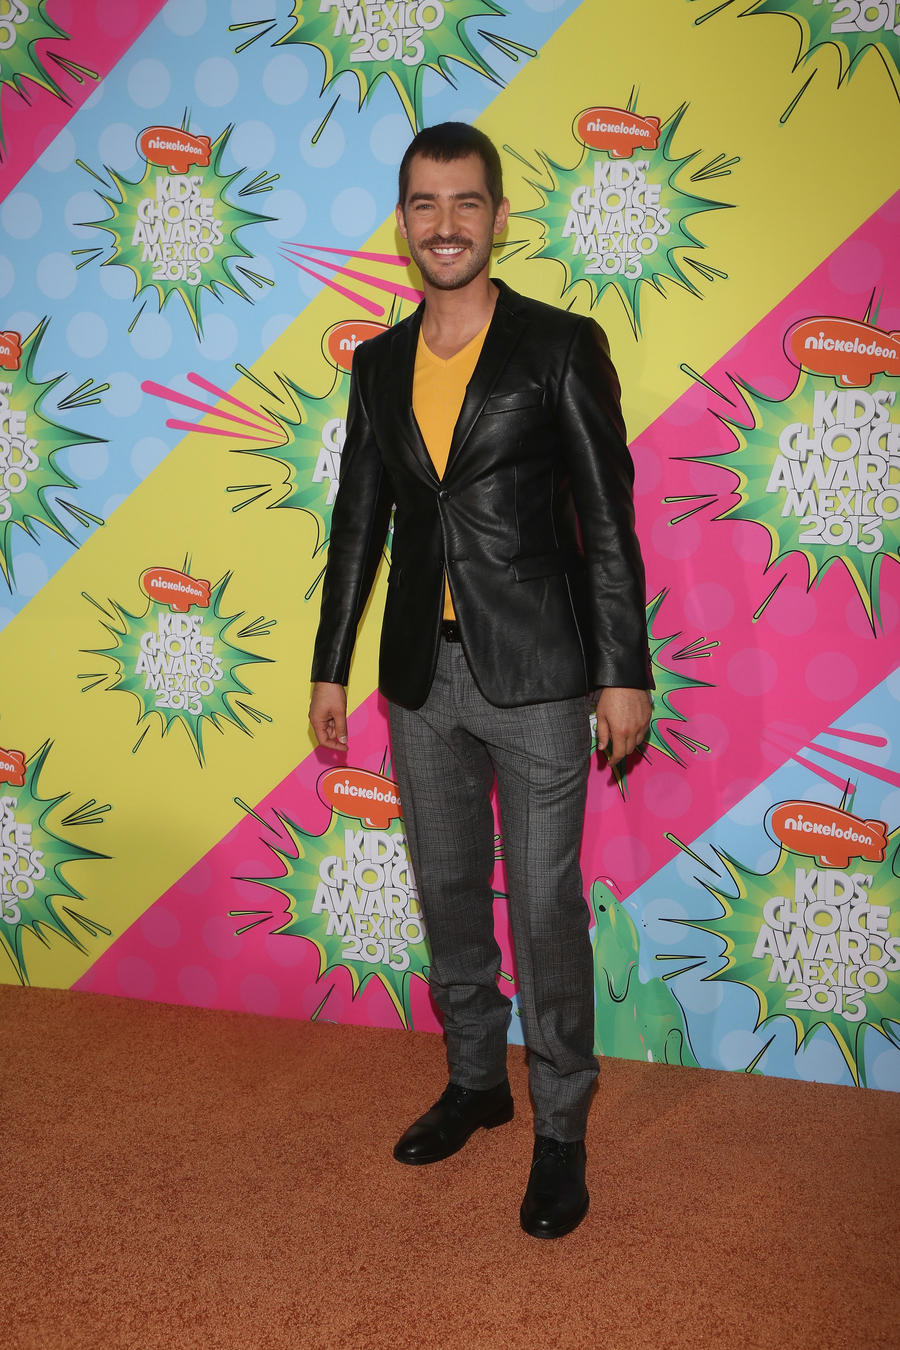 Manuel Balbi en los Kids Choice Awards Mexico 2013